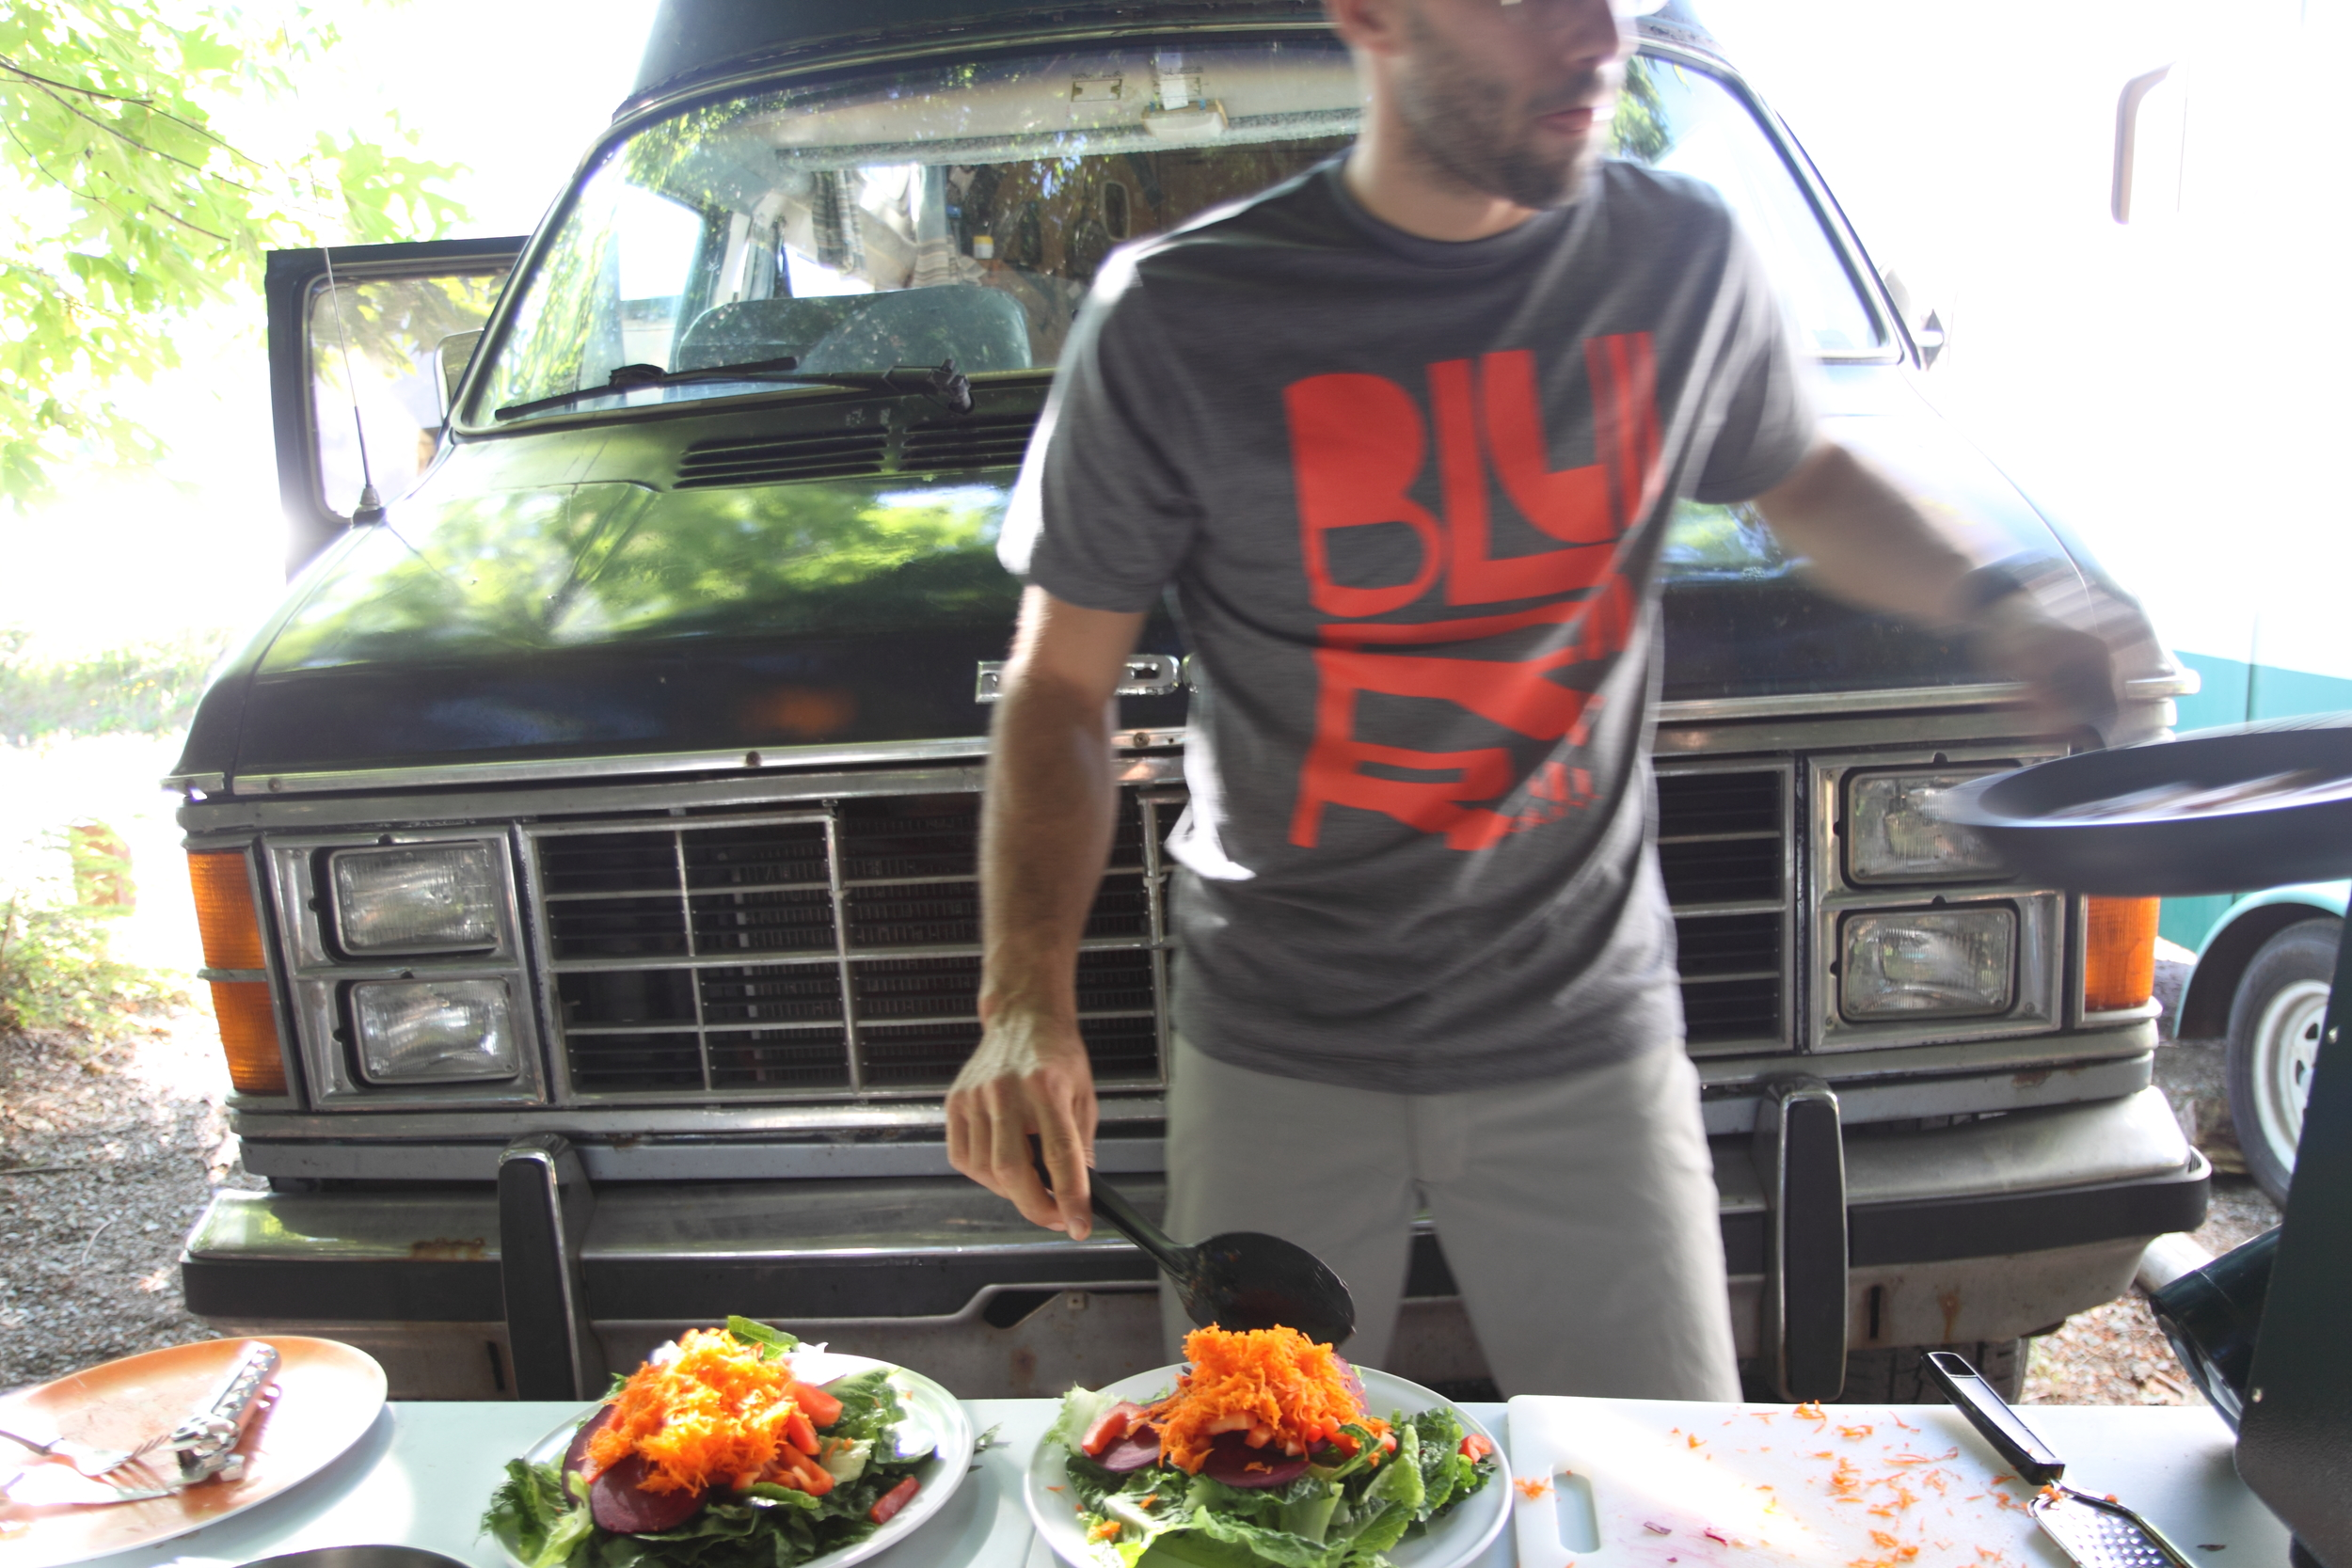 Dinner is served in front of the mighty Dodge.